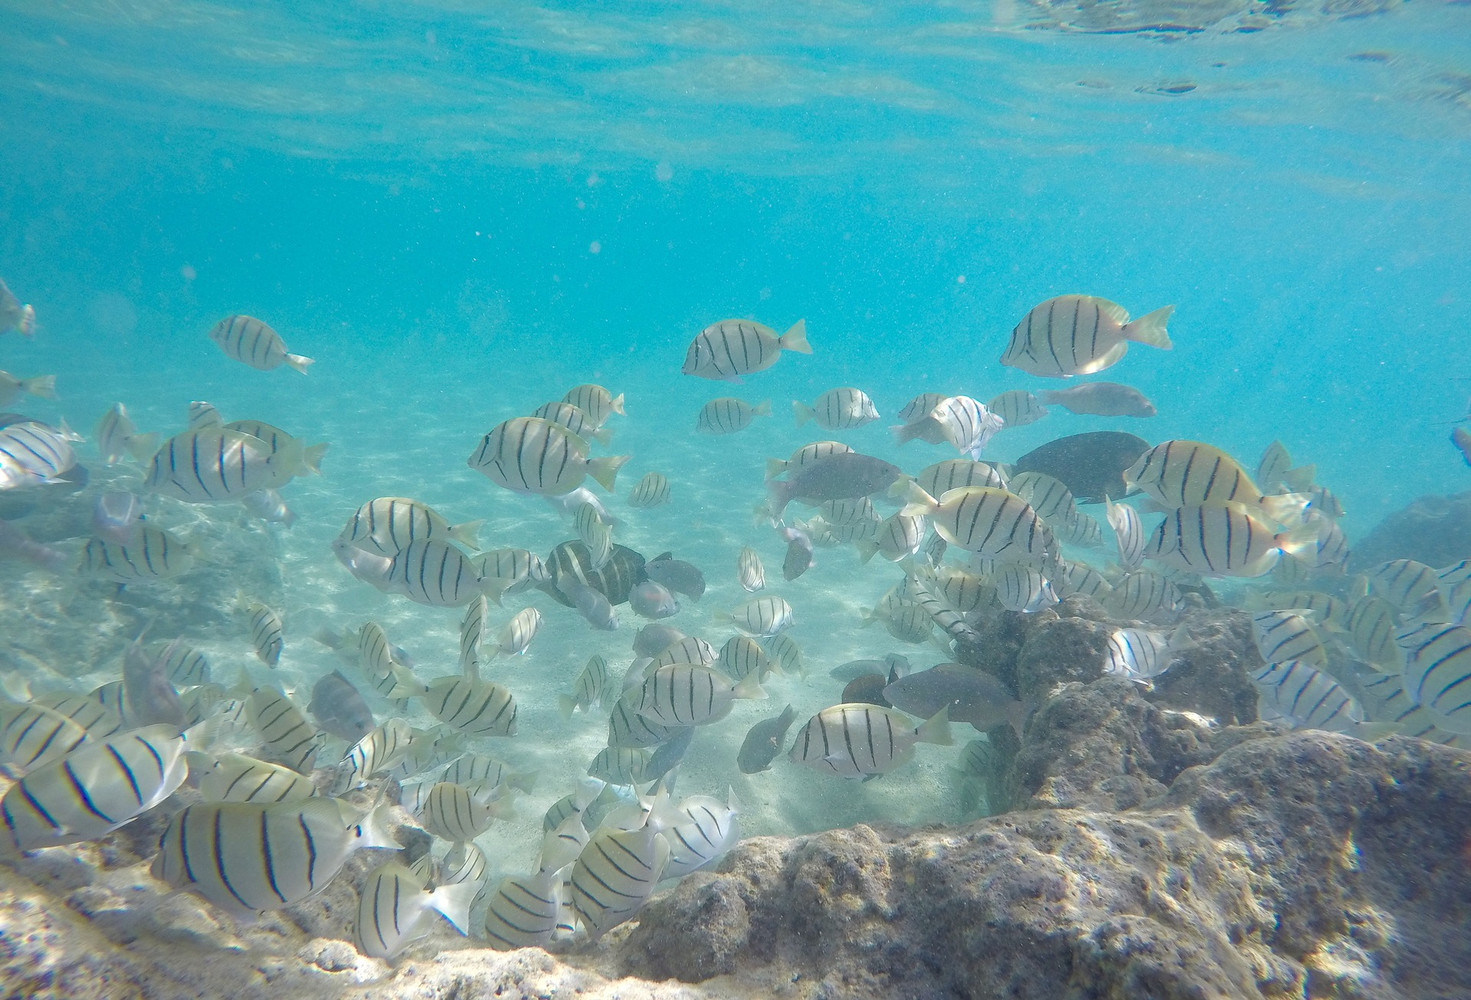 Snorkeling Spots in Hawaii